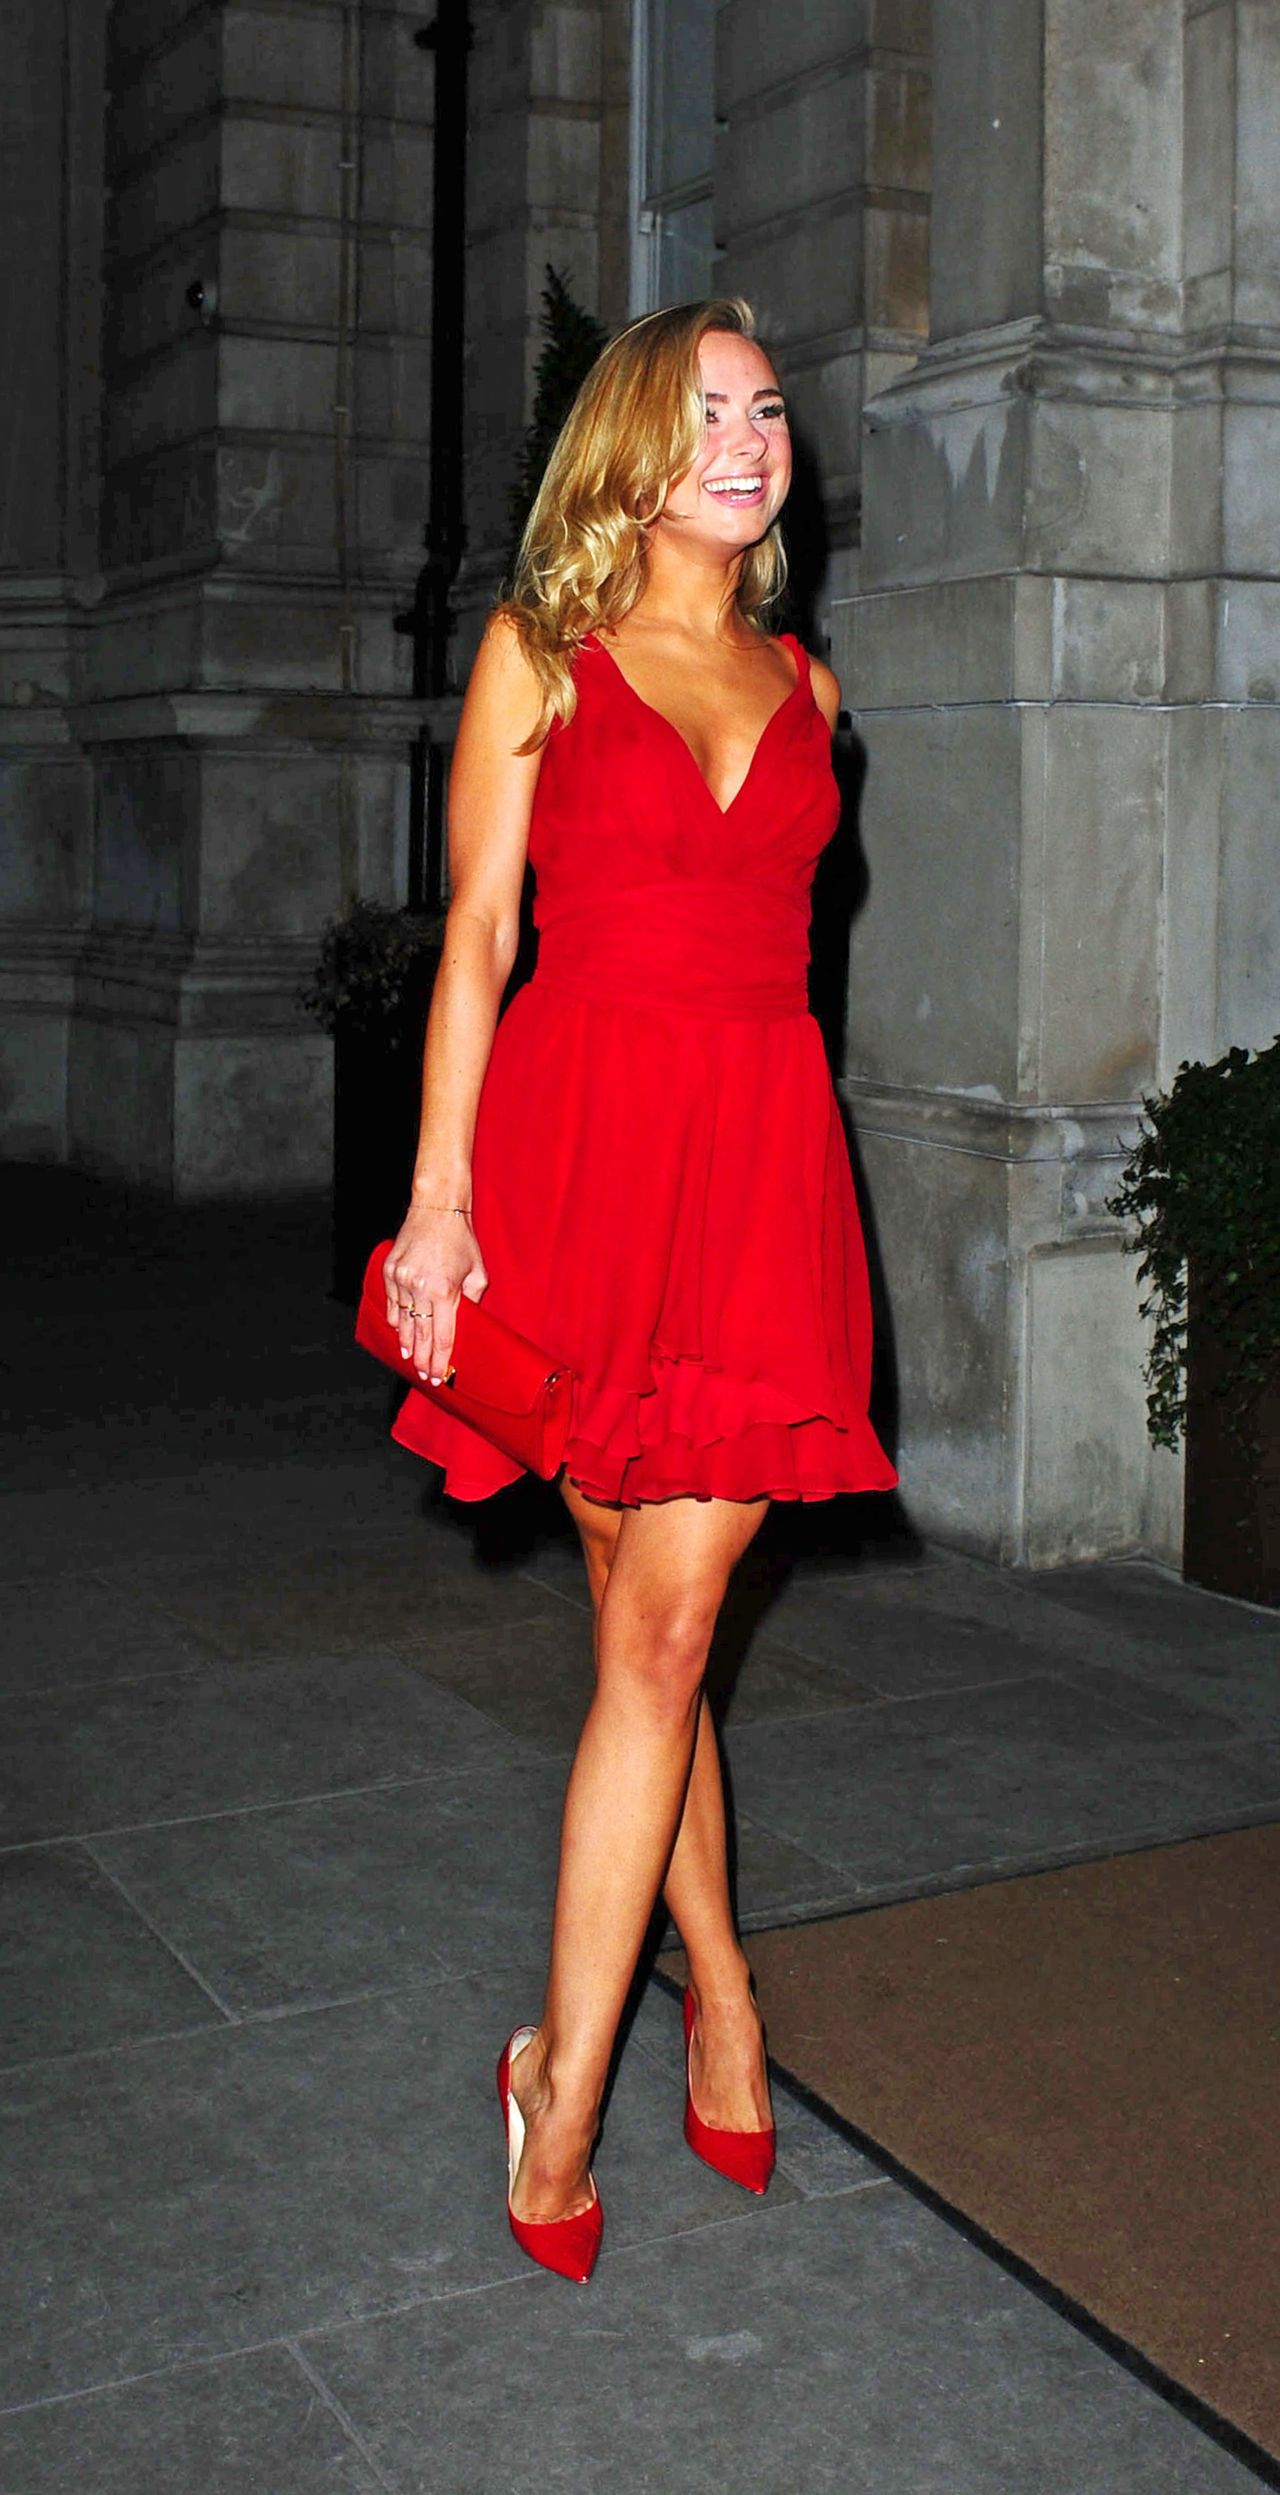 Kimberley Garner in Red Mini Dress - Langham Hotel - February 2014